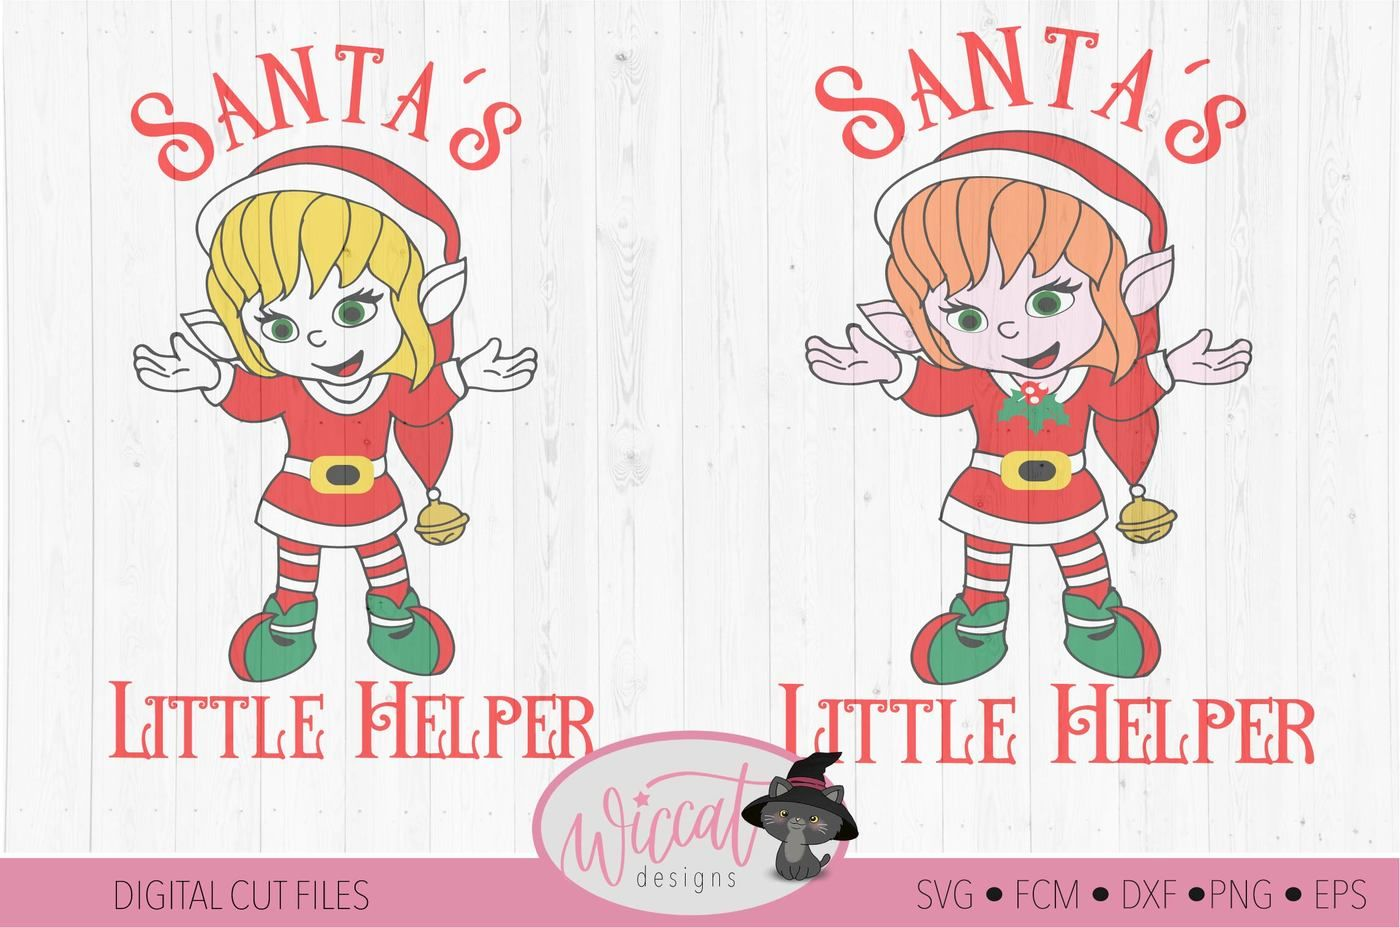 Christmas Girl Elves Svg Christmas Elf Svg Santa S Little Helper Svg By Wiccatdesigns Thehungryjpeg Com